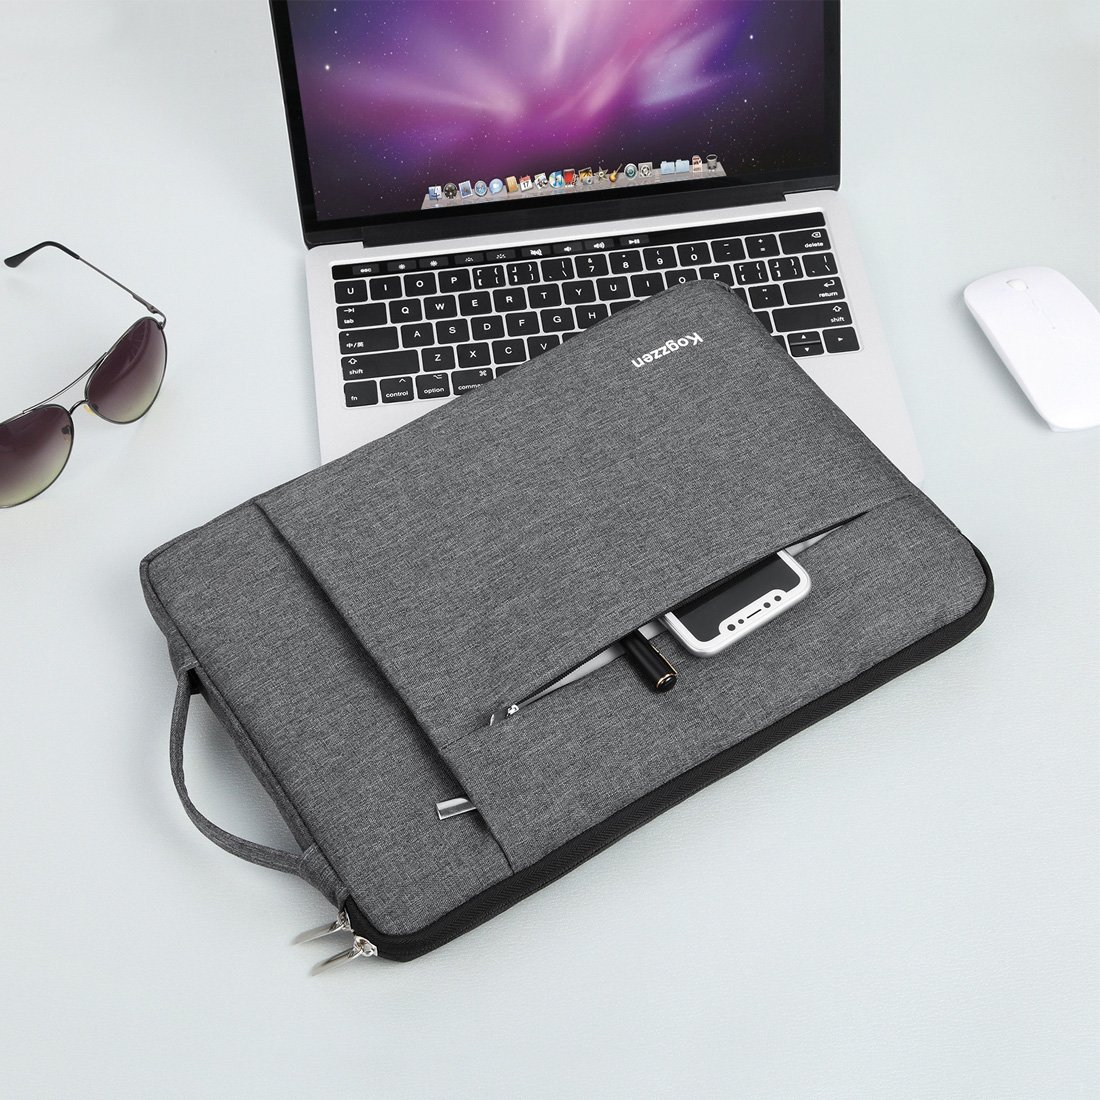 Kogzzen 13-13.5 Inch Laptop Sleeve Shockproof Lightweight Case Carrying Bag Compatible with MacBook Pro 13 inch/MacBook Air 13.3/ Dell XPS 13/ Surface Book 2 13.5/ Surface Laptop/iPad Pro 12.9 - Gray by Kogzzen (Image #7)